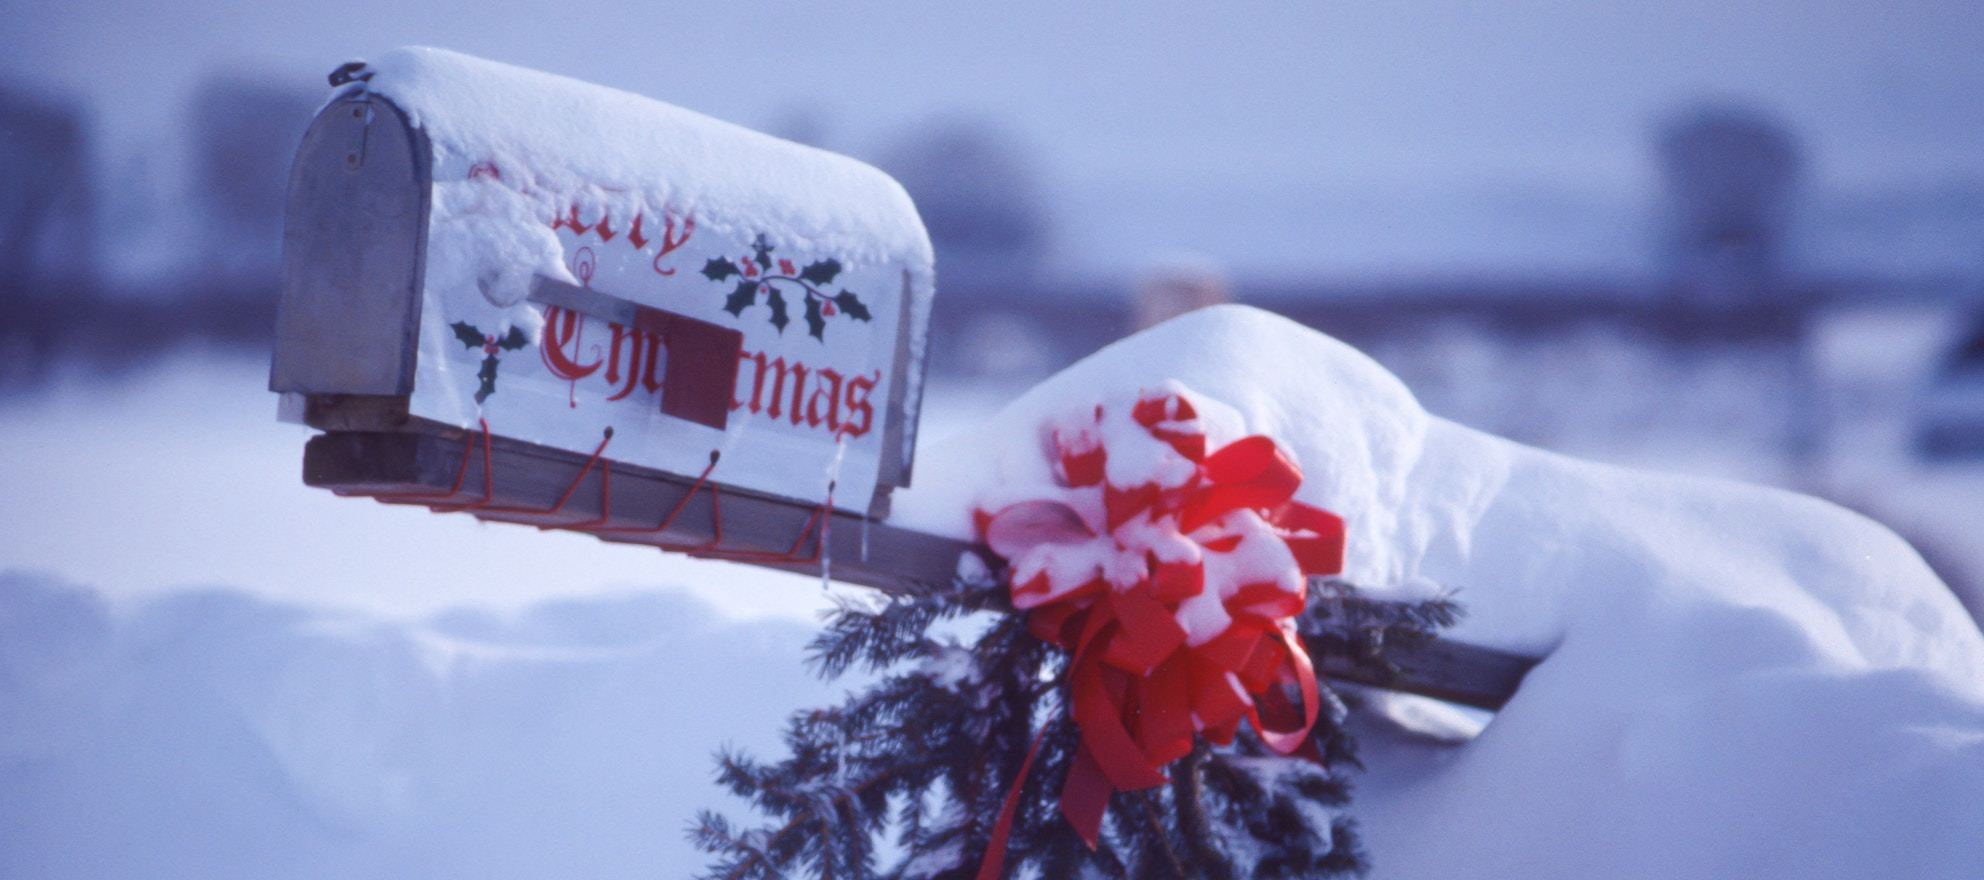 How to sell a home during the holidays